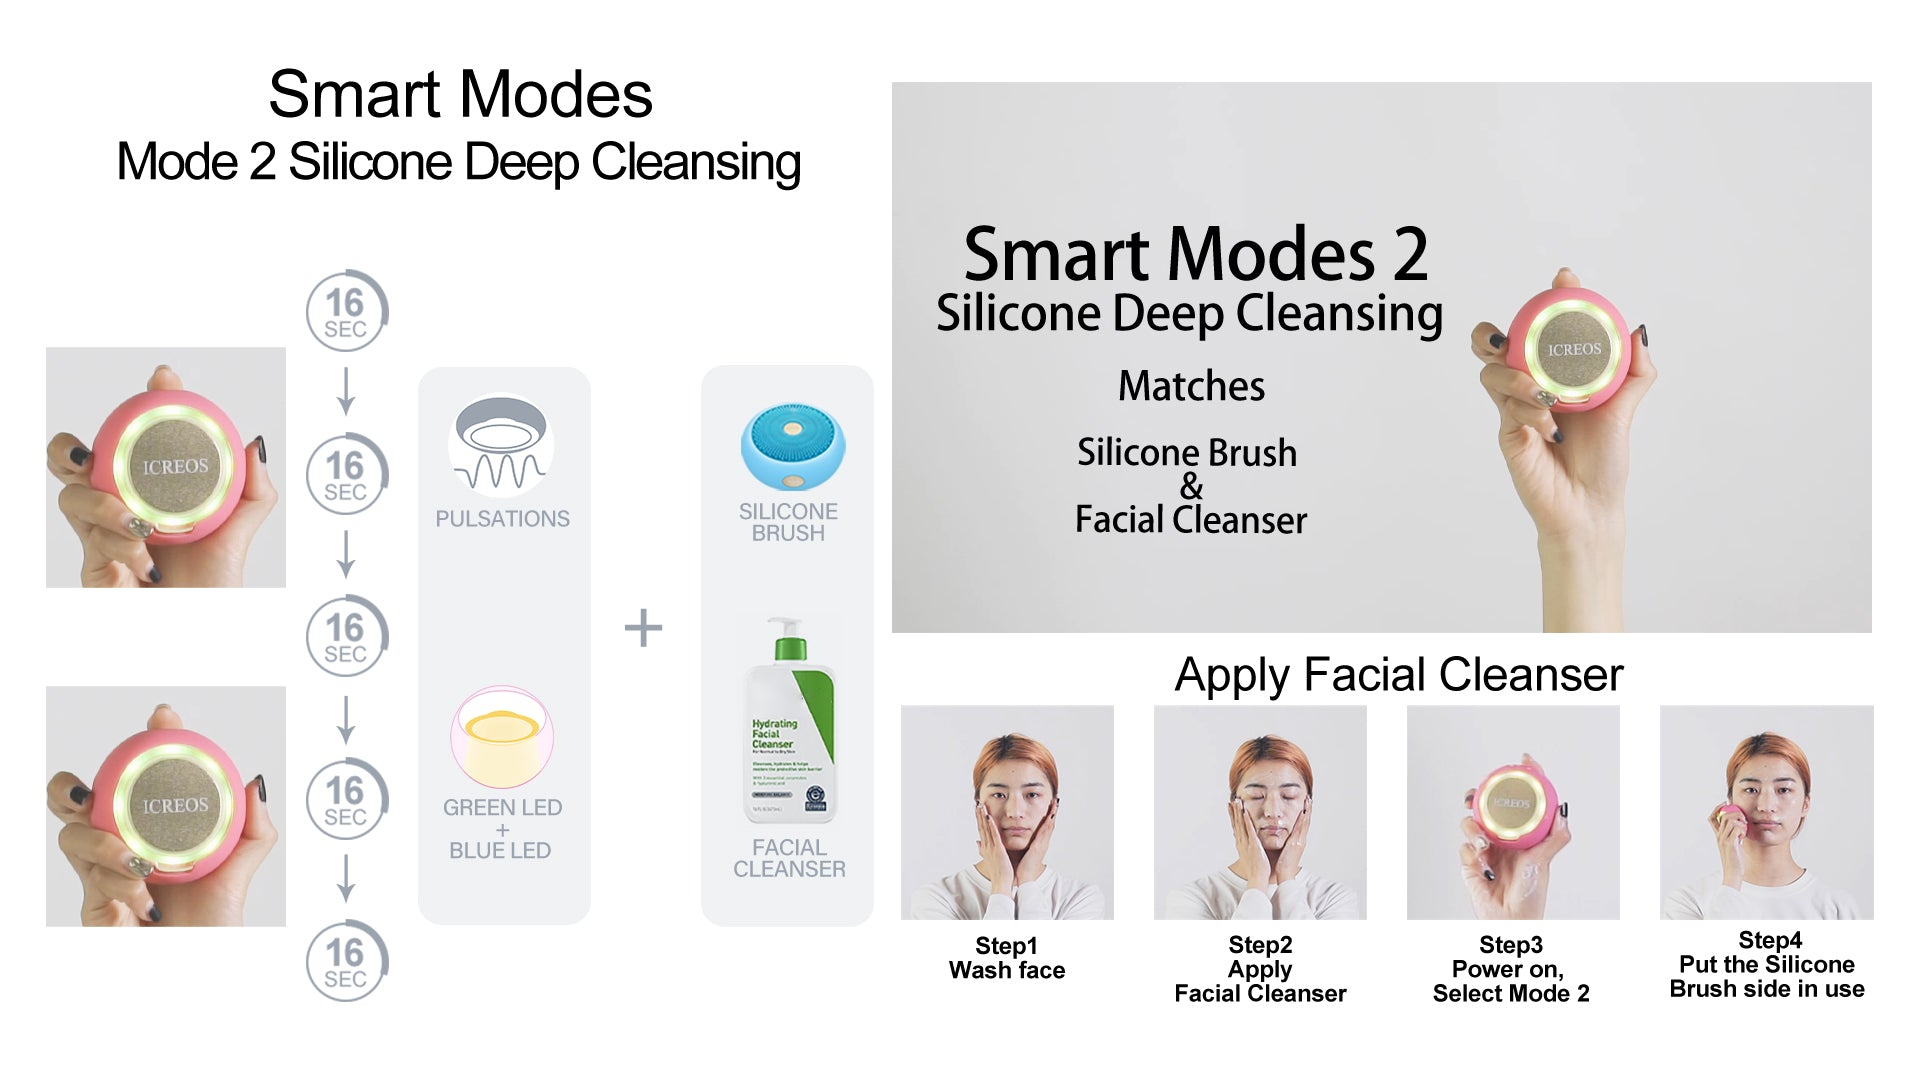 ICREOSMNI-Smart_Modes_2-Silicone_Cleansing-0.jpg